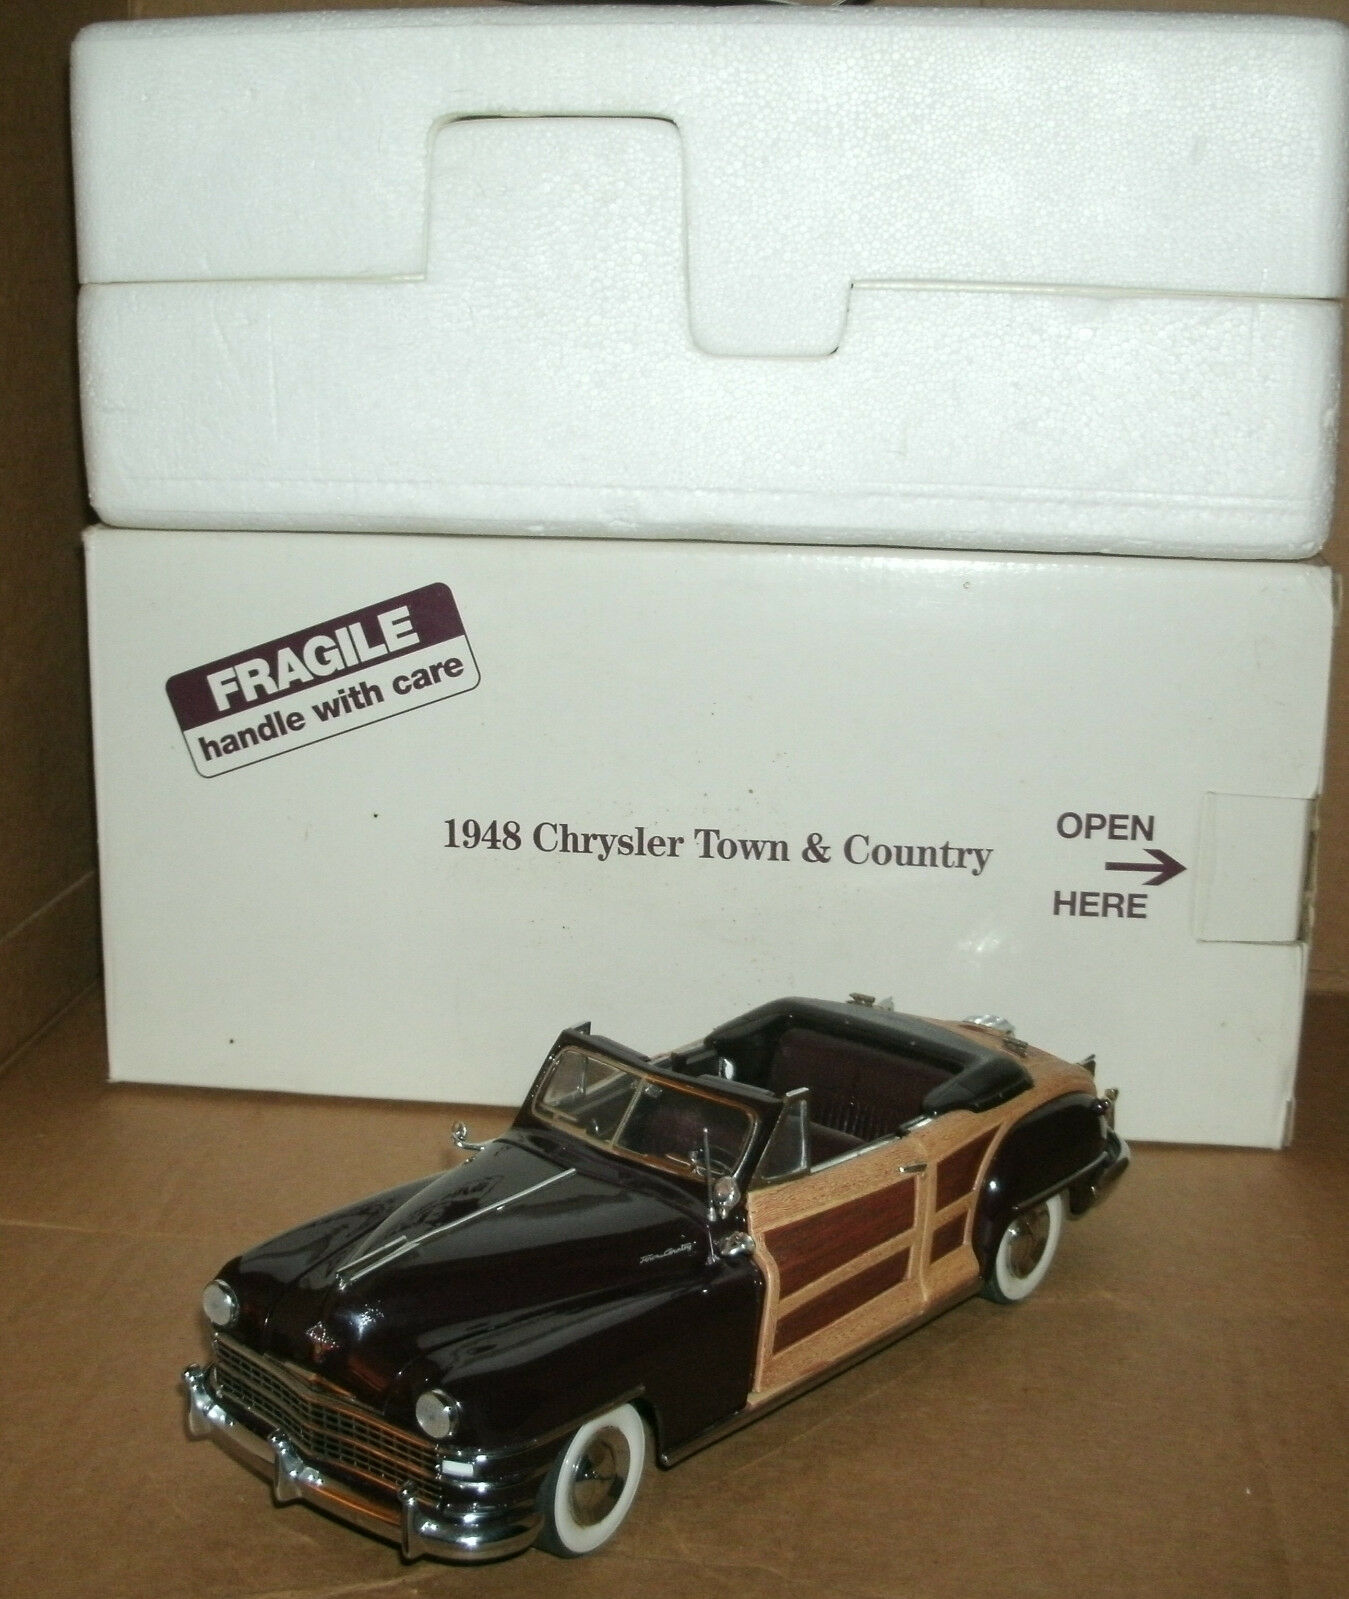 1 24 Scale 1948 Chrysler Town & Country Woody Conv Diecast Model - Danbury Mint